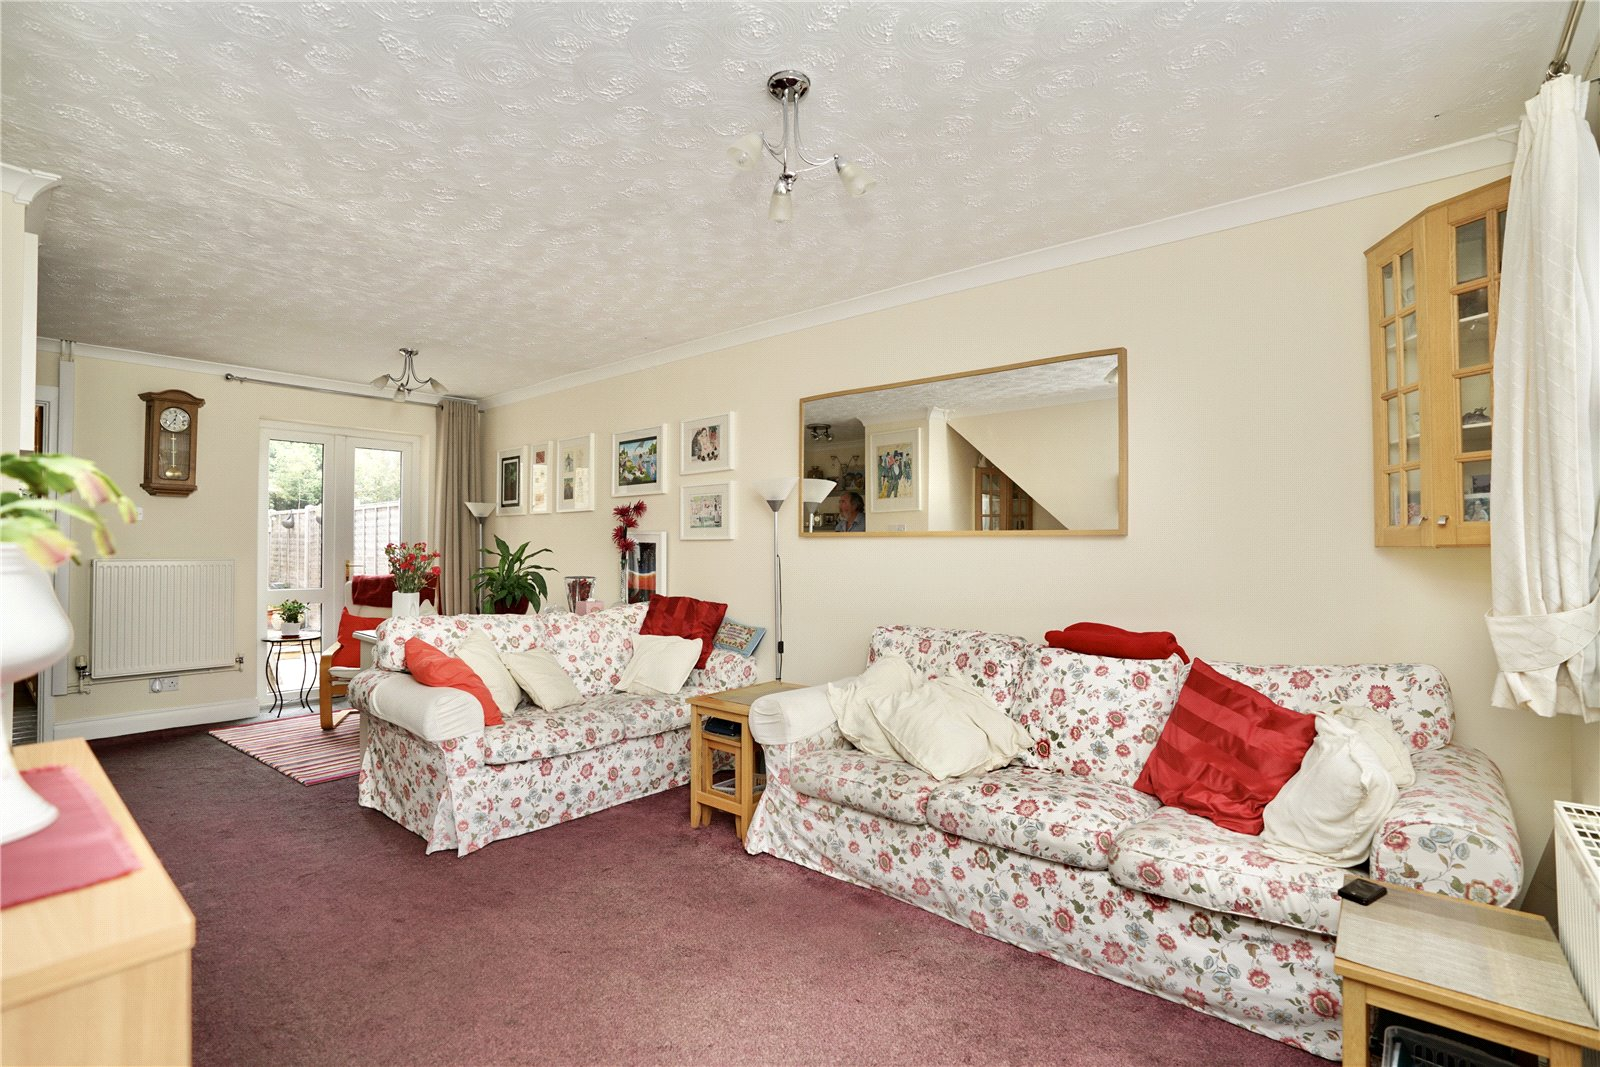 3 bed house for sale in Cunningham Way, Eaton Socon  - Property Image 8